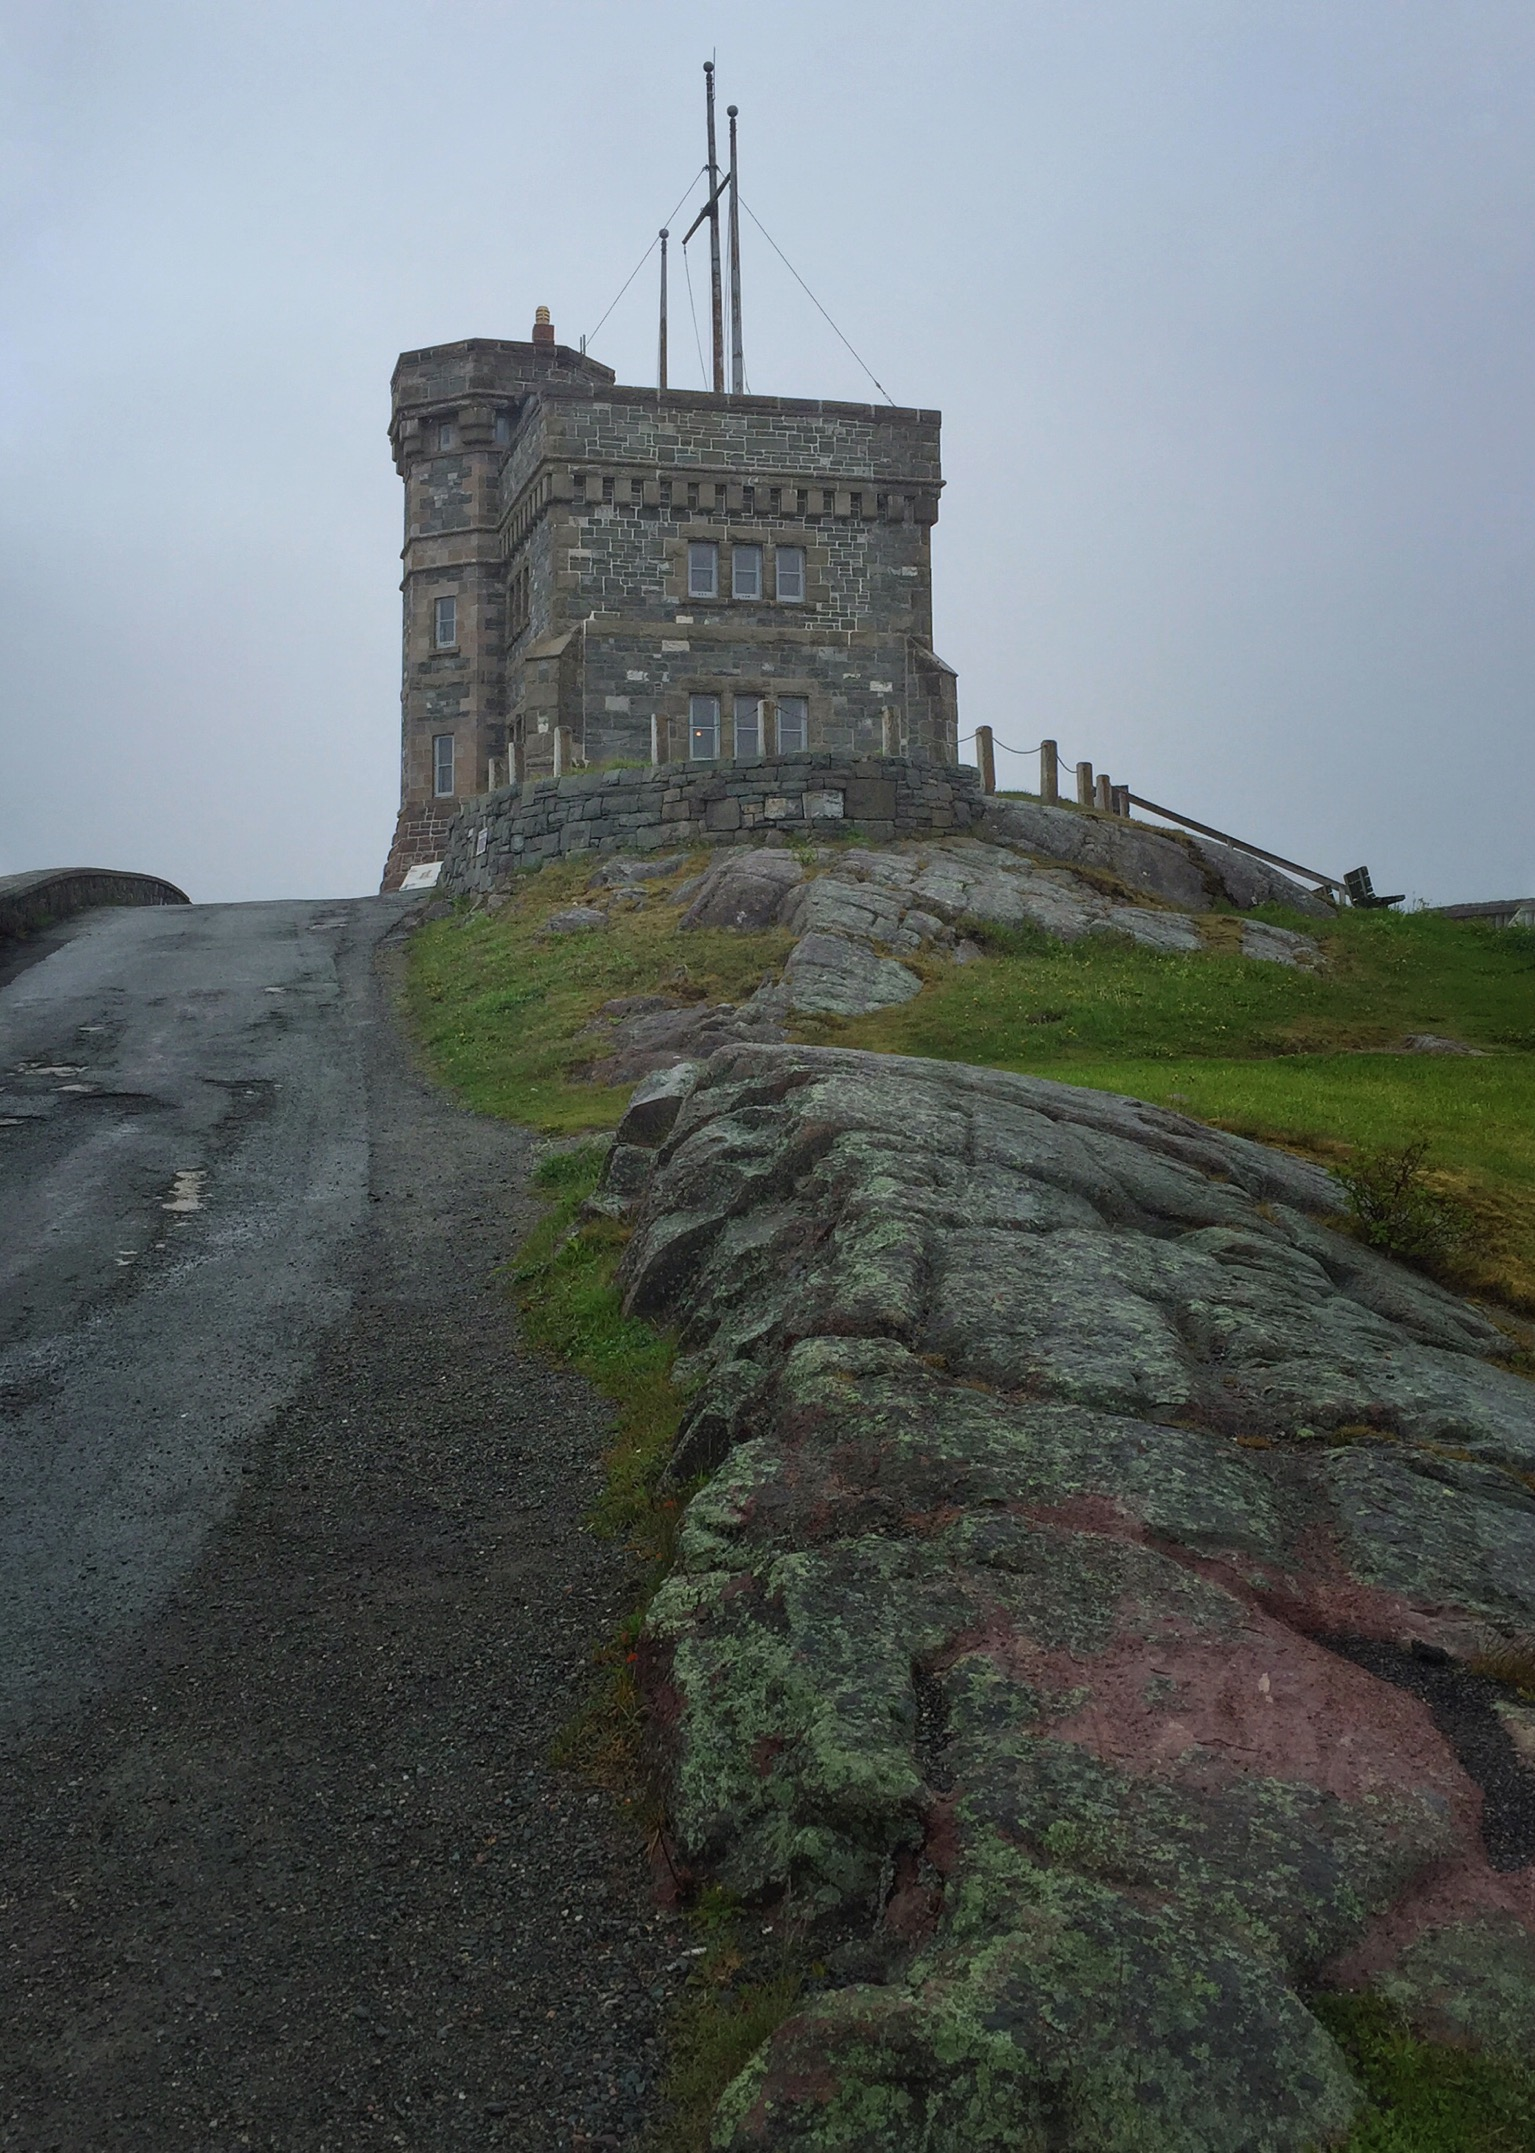 Cabot Tower on Signal Hill